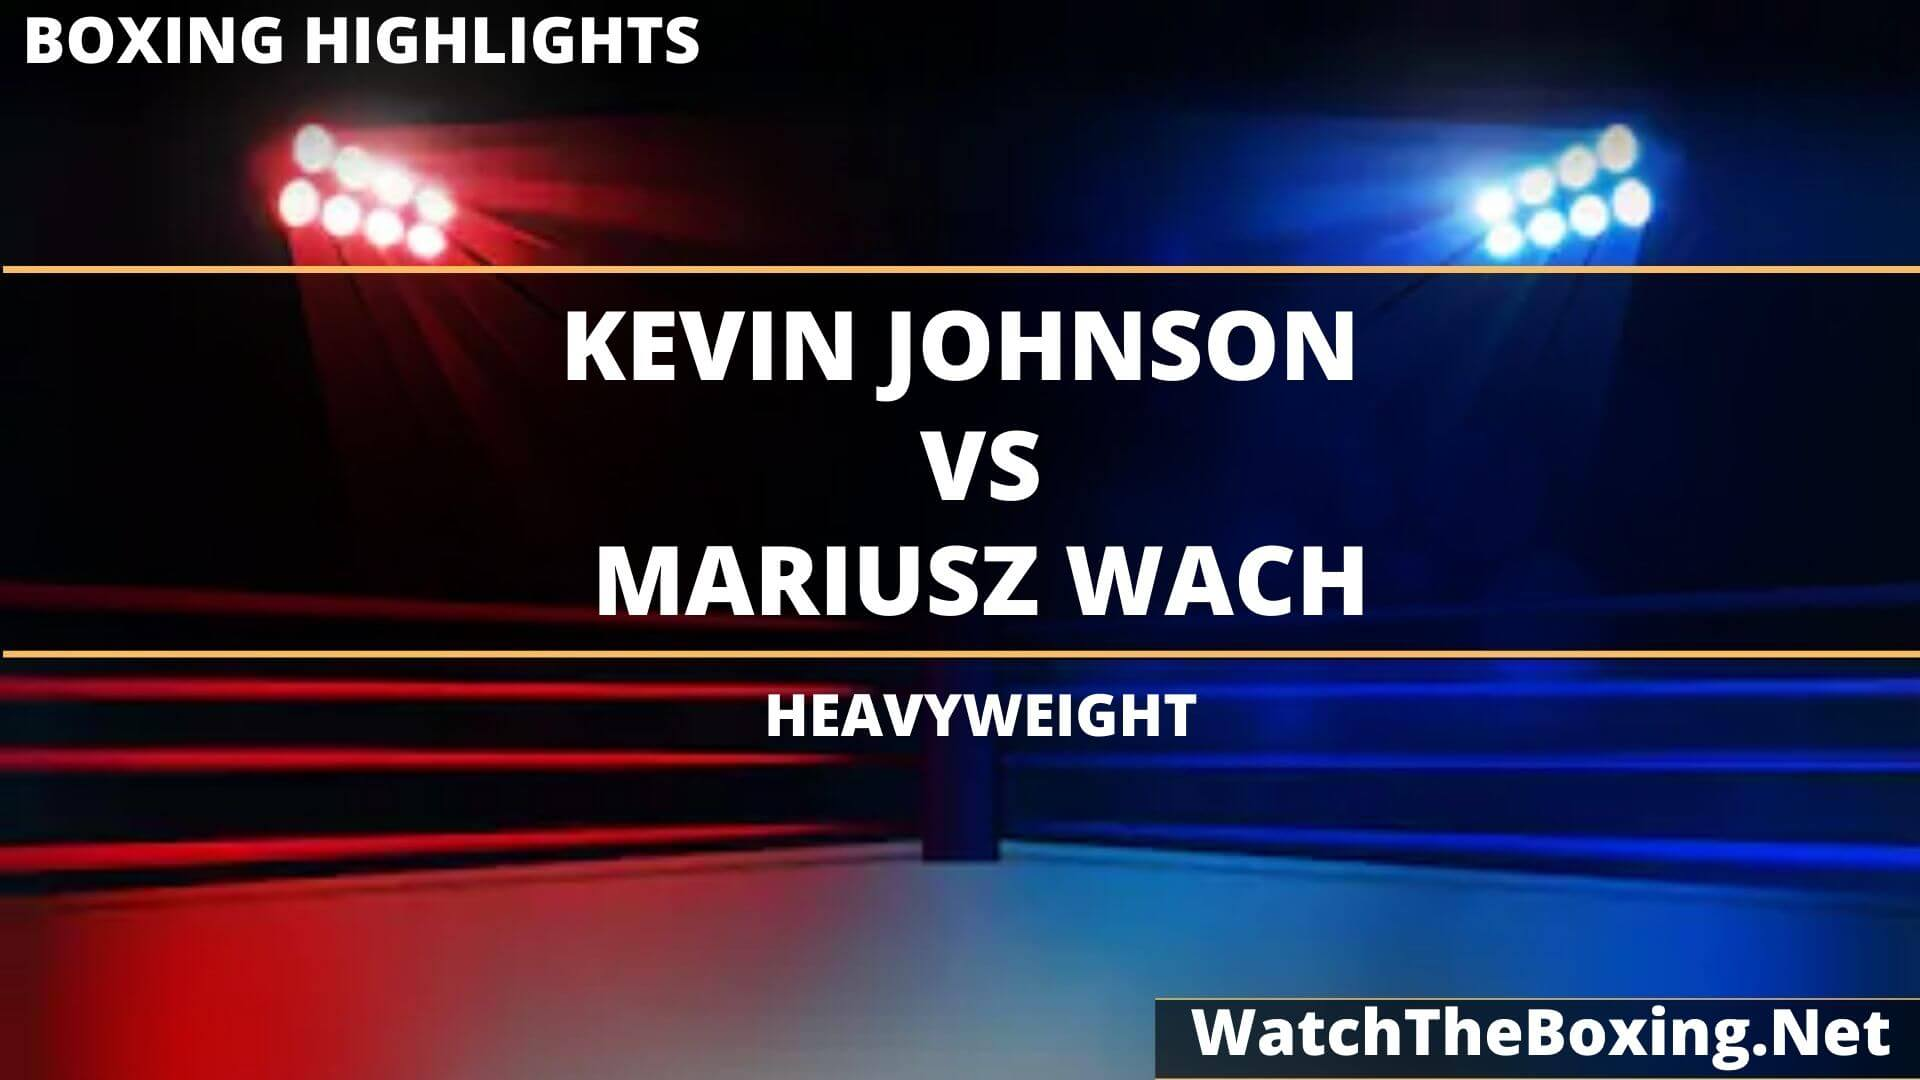 Kevin Johnson Vs Mariusz Wach Highlights 2020 Heavyweight